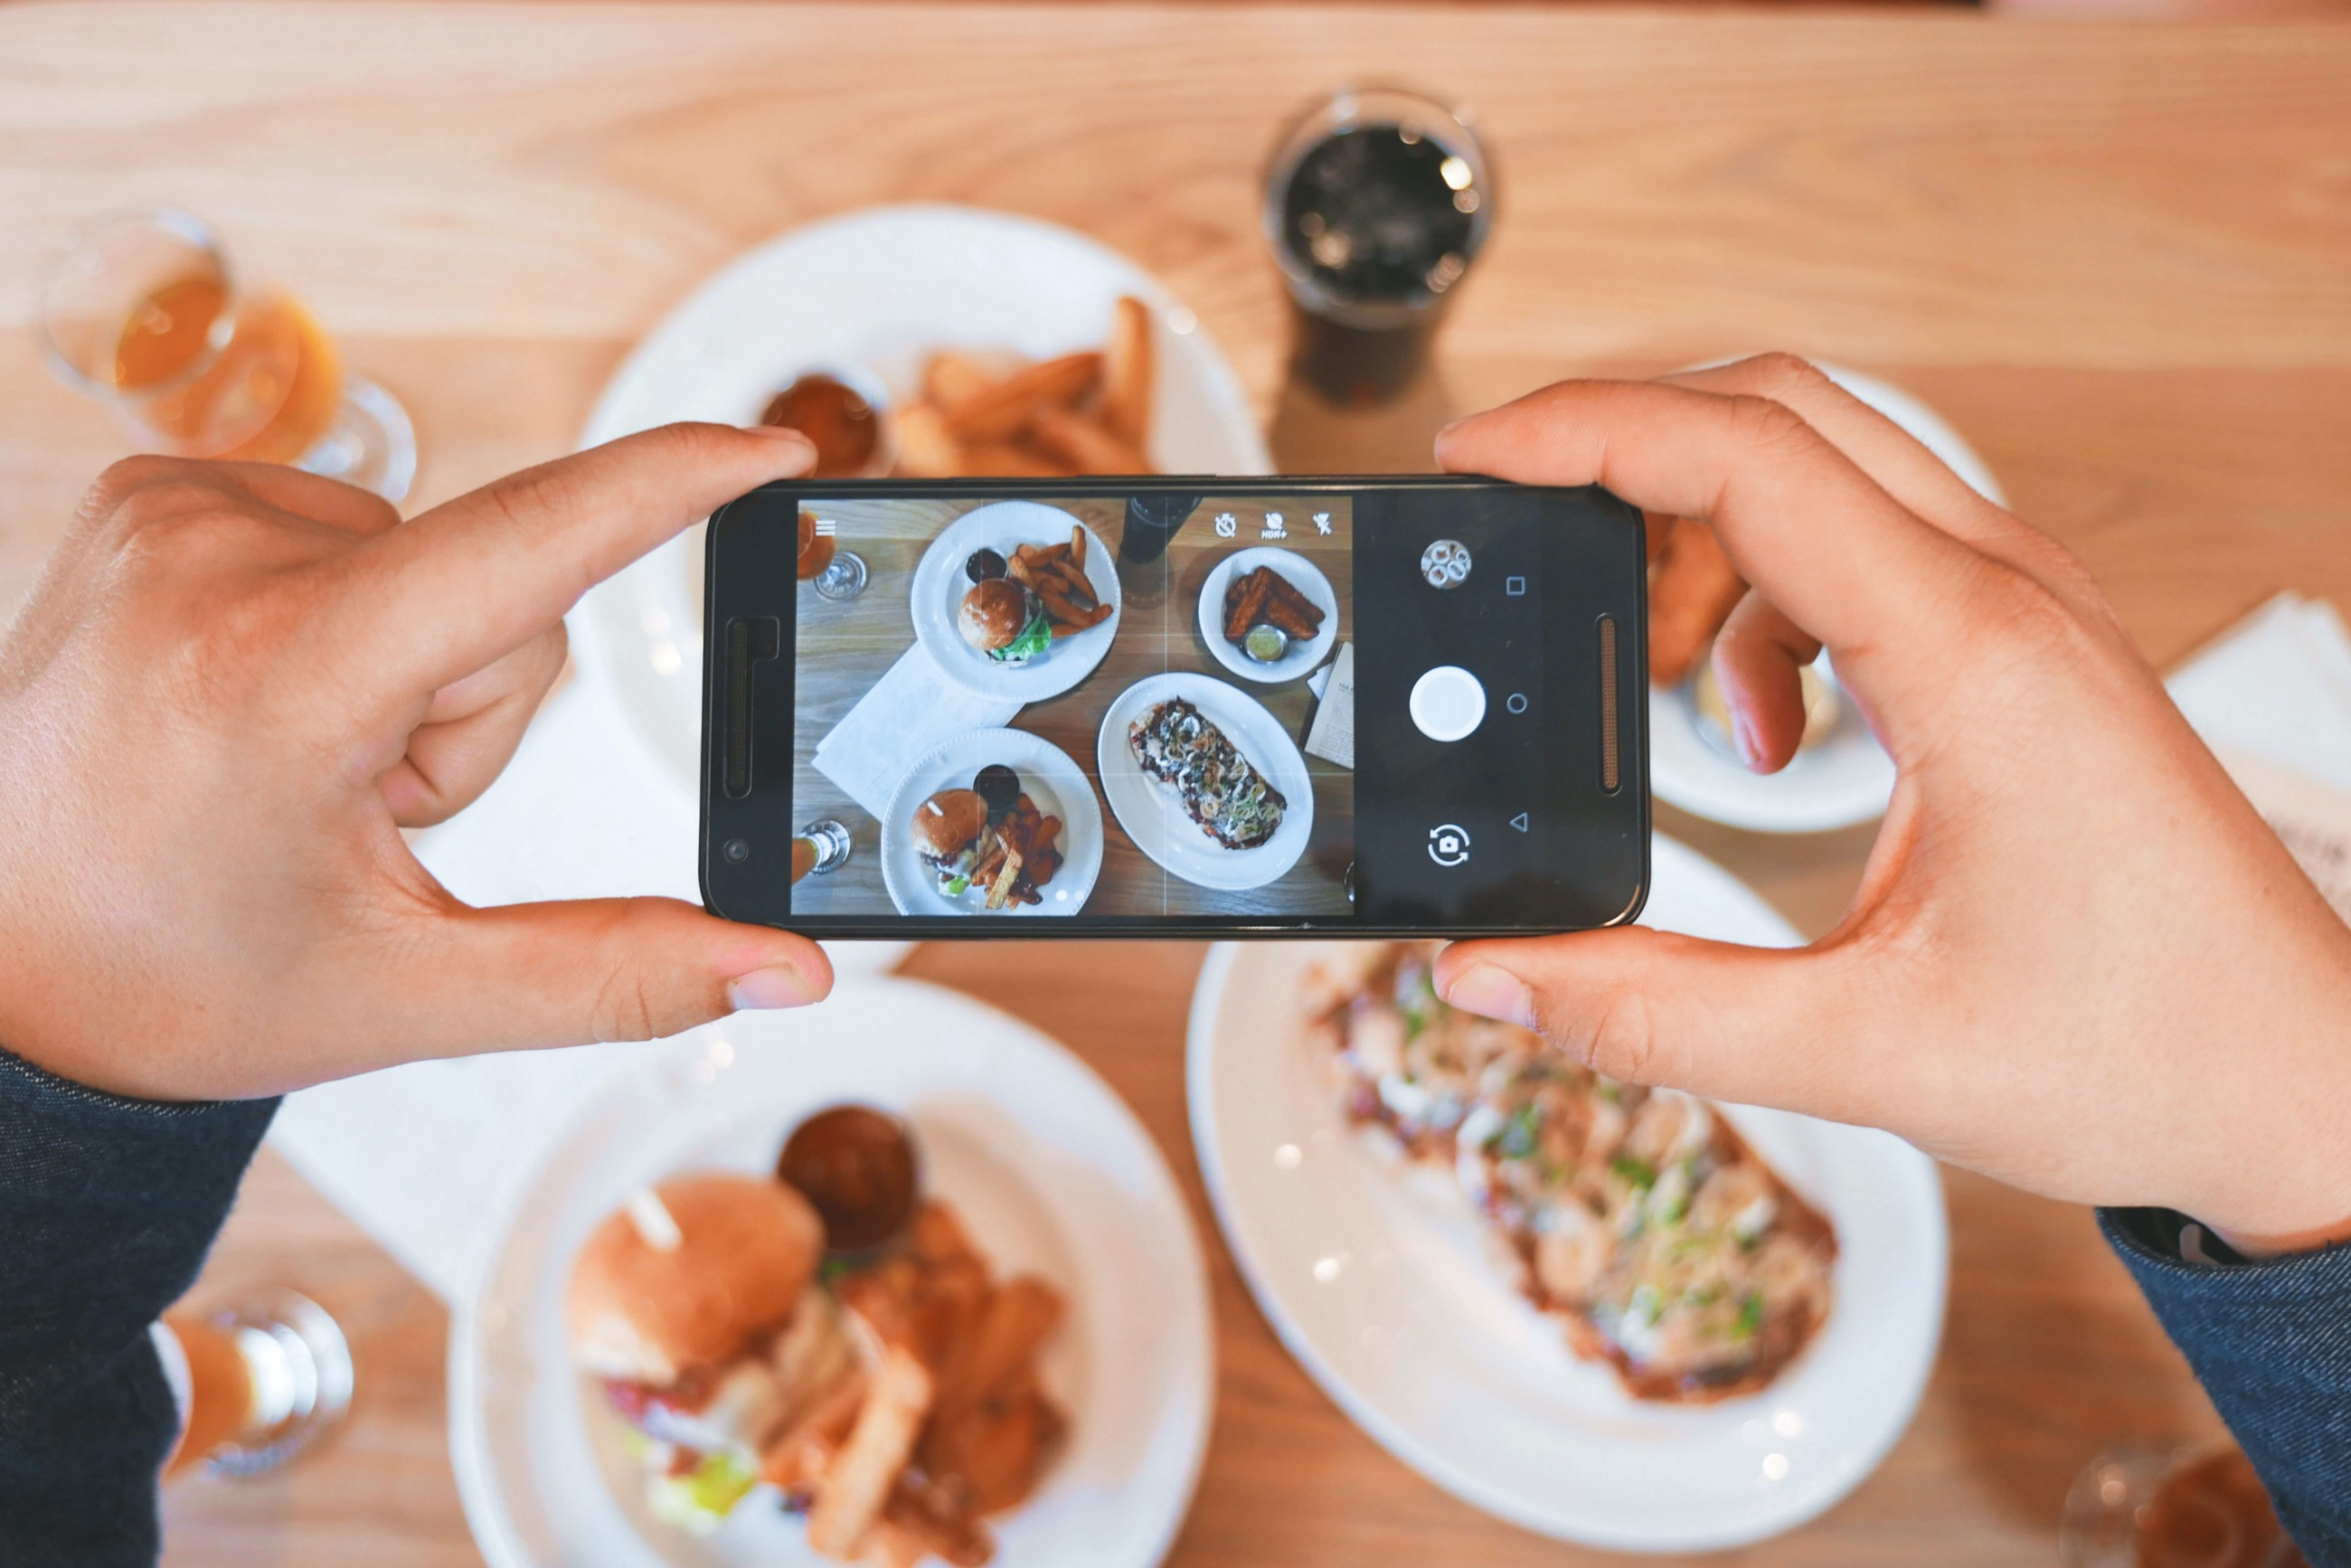 , 3 Reasons Why I Don't Post My Personal Life on Social Media